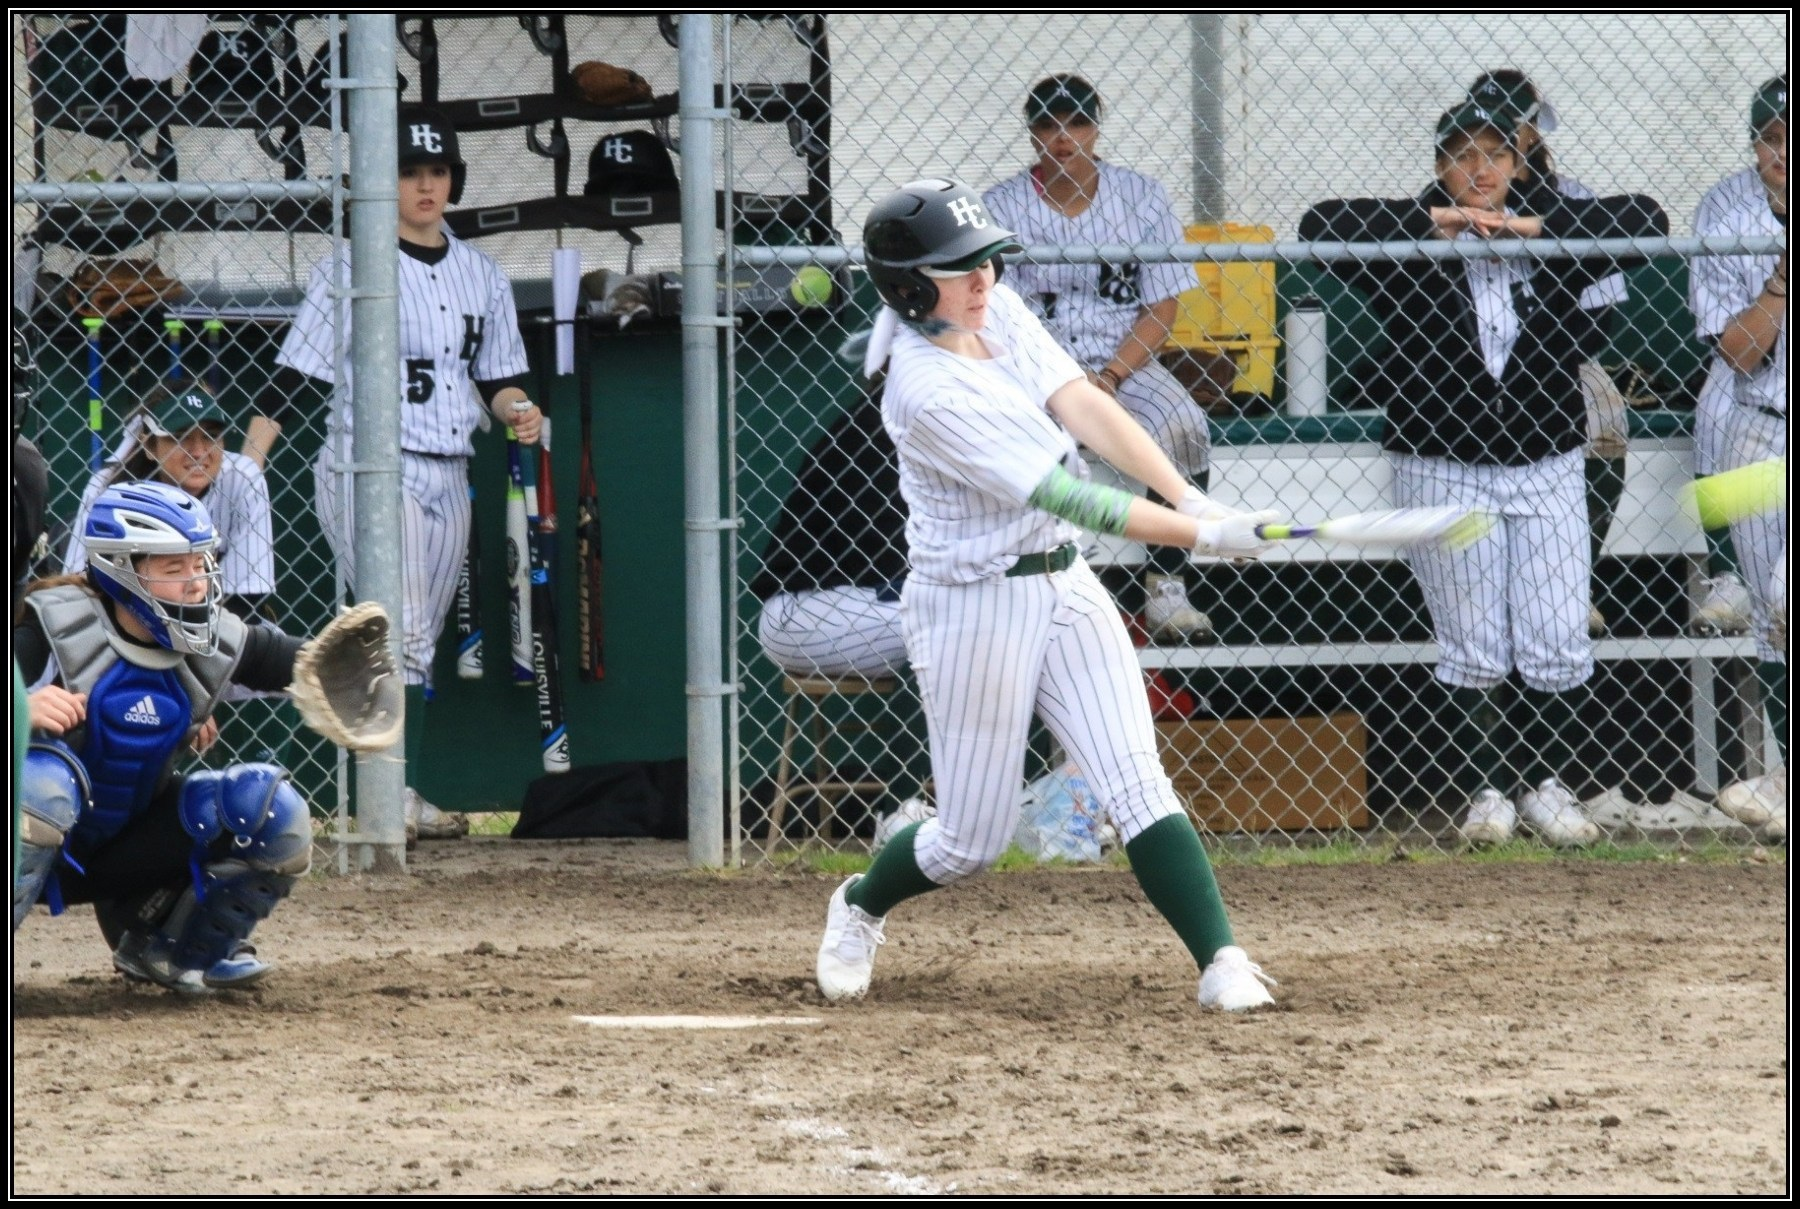 Women's Softball Action Photo